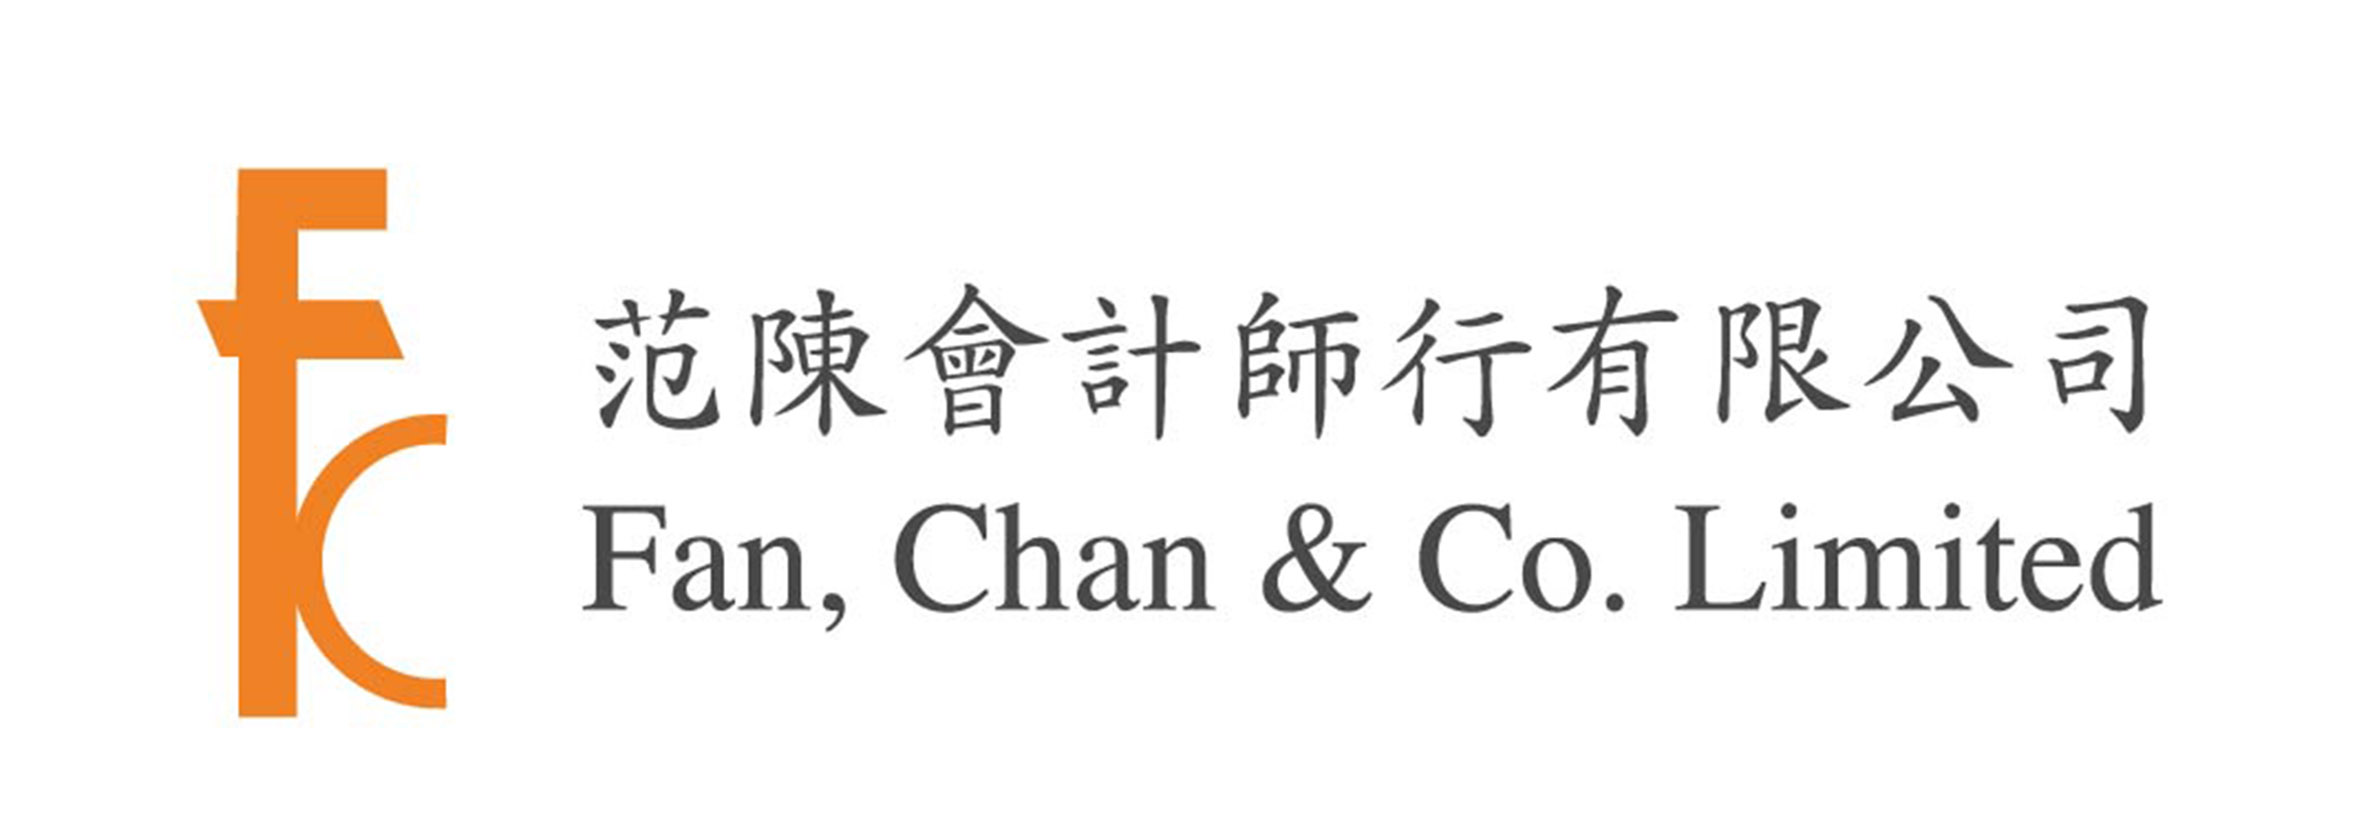 Fan, Chan & Co.